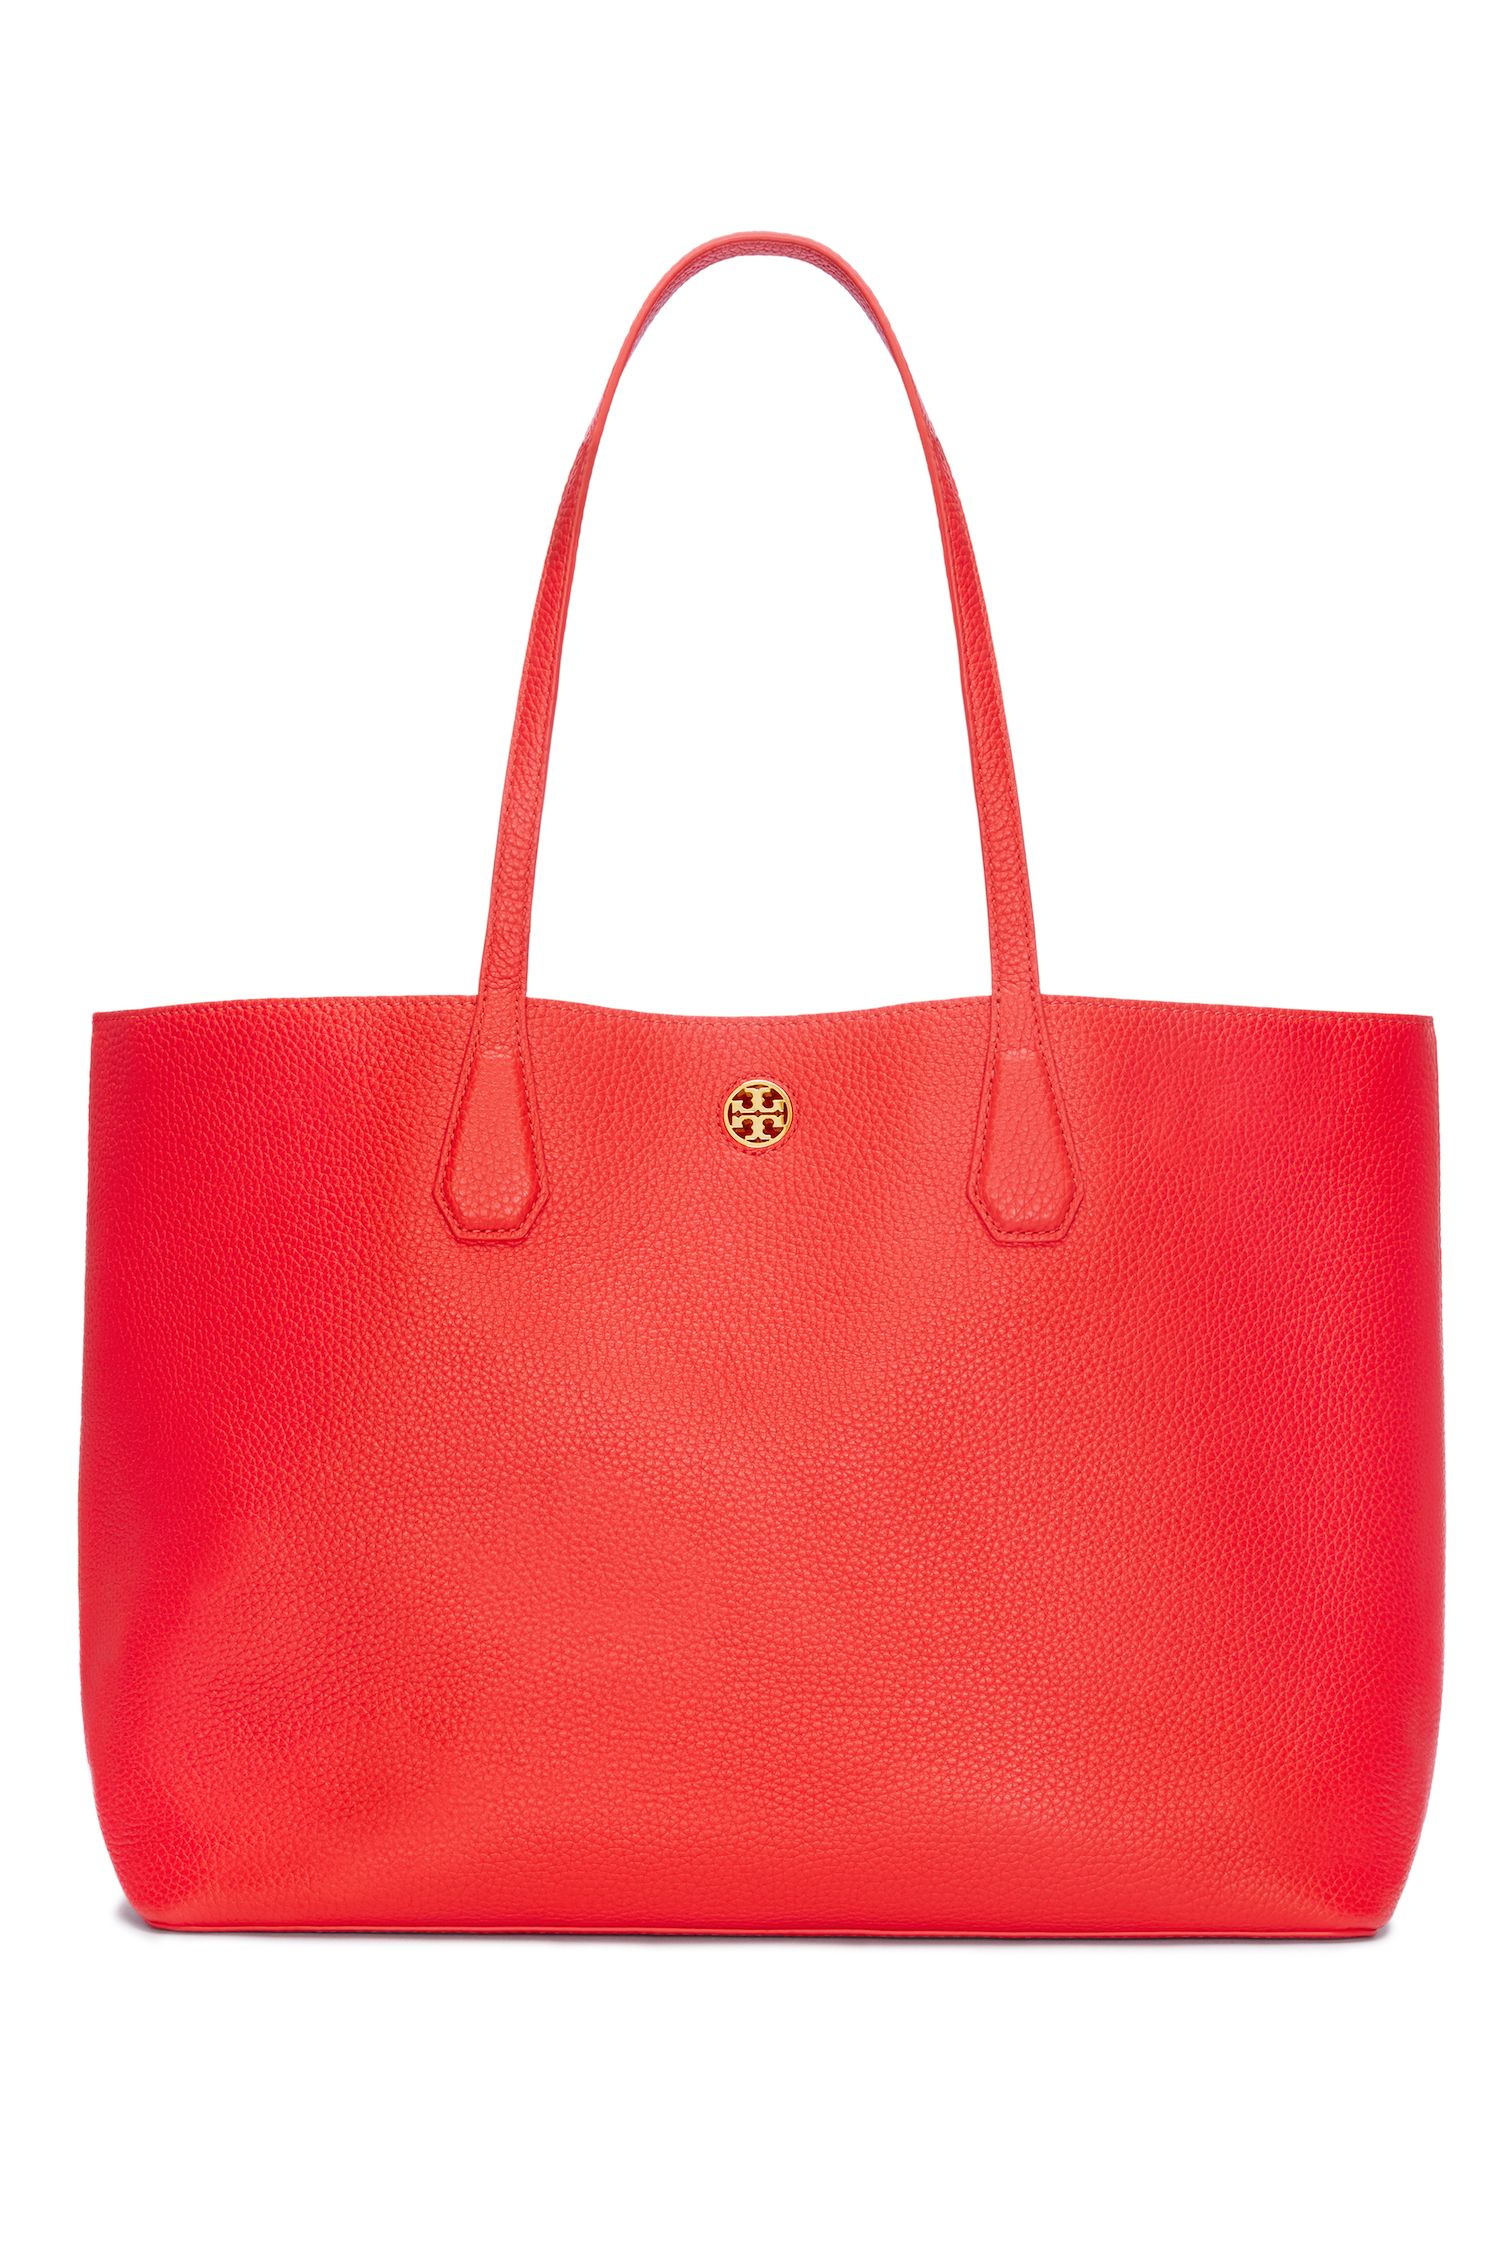 "<p>Every girl needs a go-to carryall—bonus points for a luxe yet totally practical bag that gives off a coveted air of ""I'm effortless, yet chic."" This one will carry her straight from brunch to the boardroom (and anywhere else the day may take her), with a bright, playful color that screams confidence.<br>